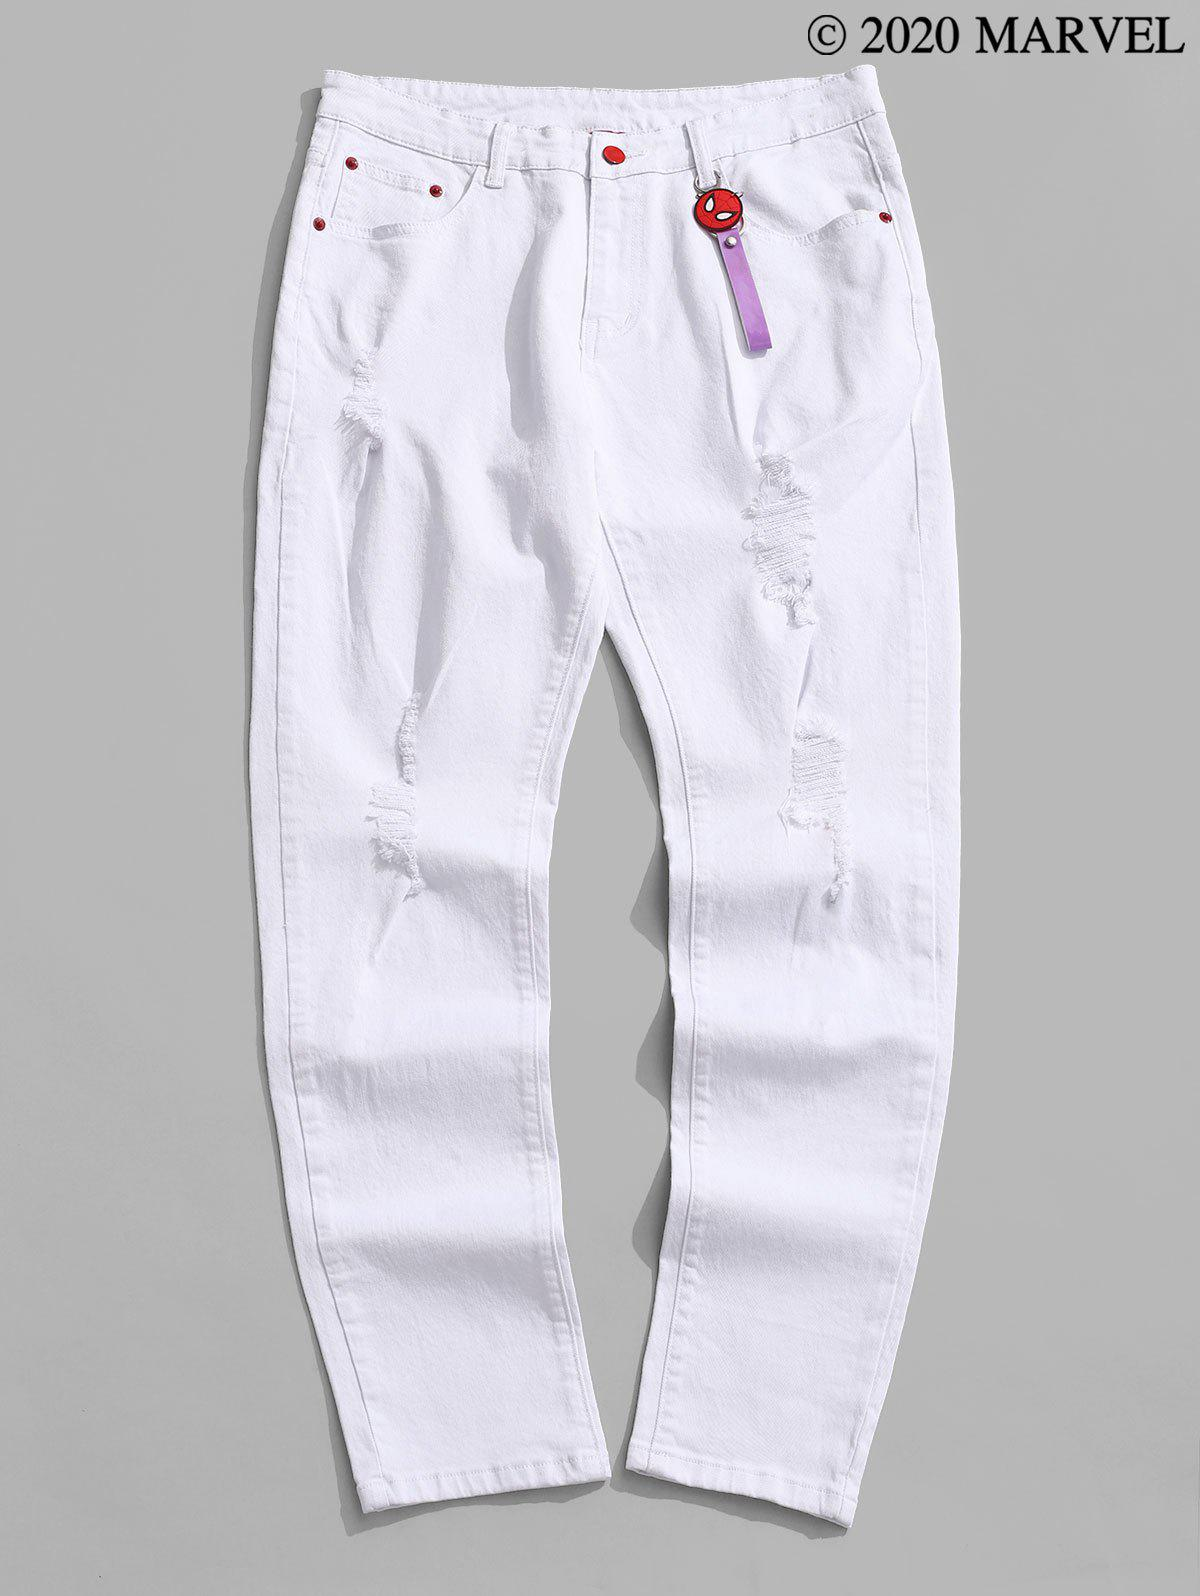 Marvel Spider-Man Ripped Tapered Jeans with Keychain - WHITE S